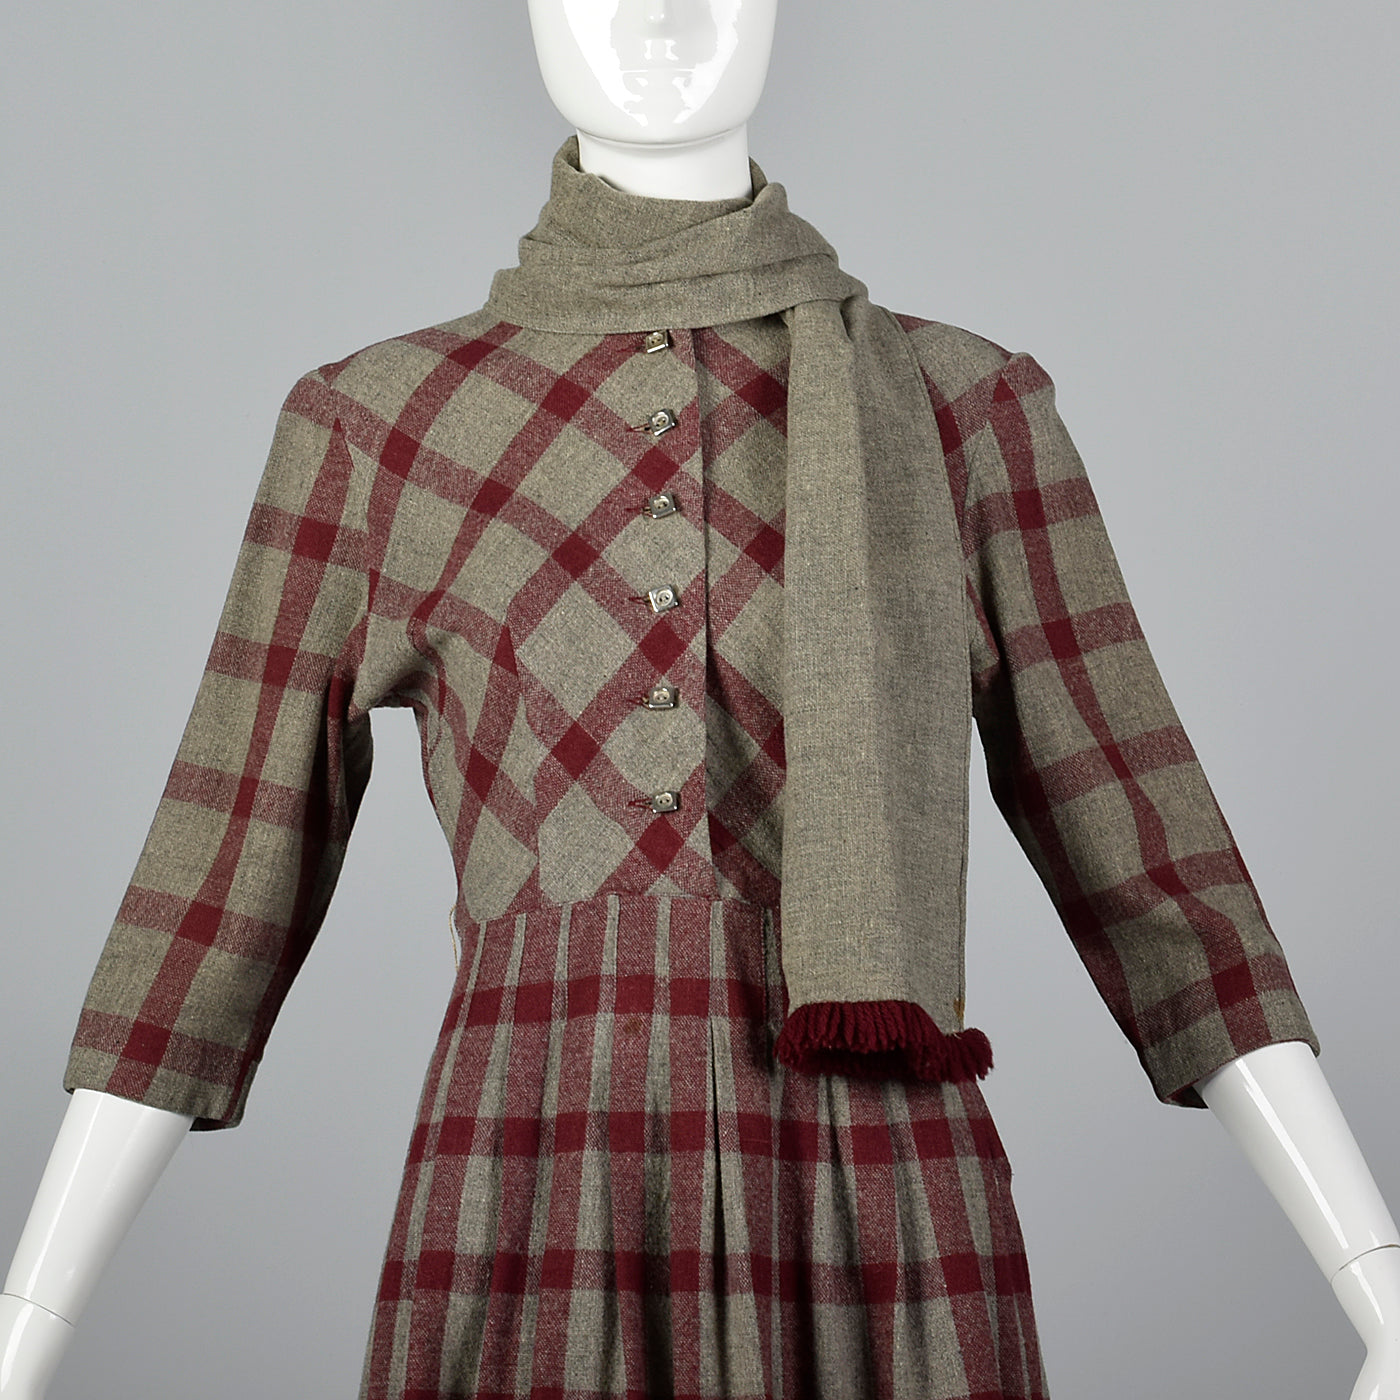 1950s Gray and Burgundy Wool Dress with Matching Scarf